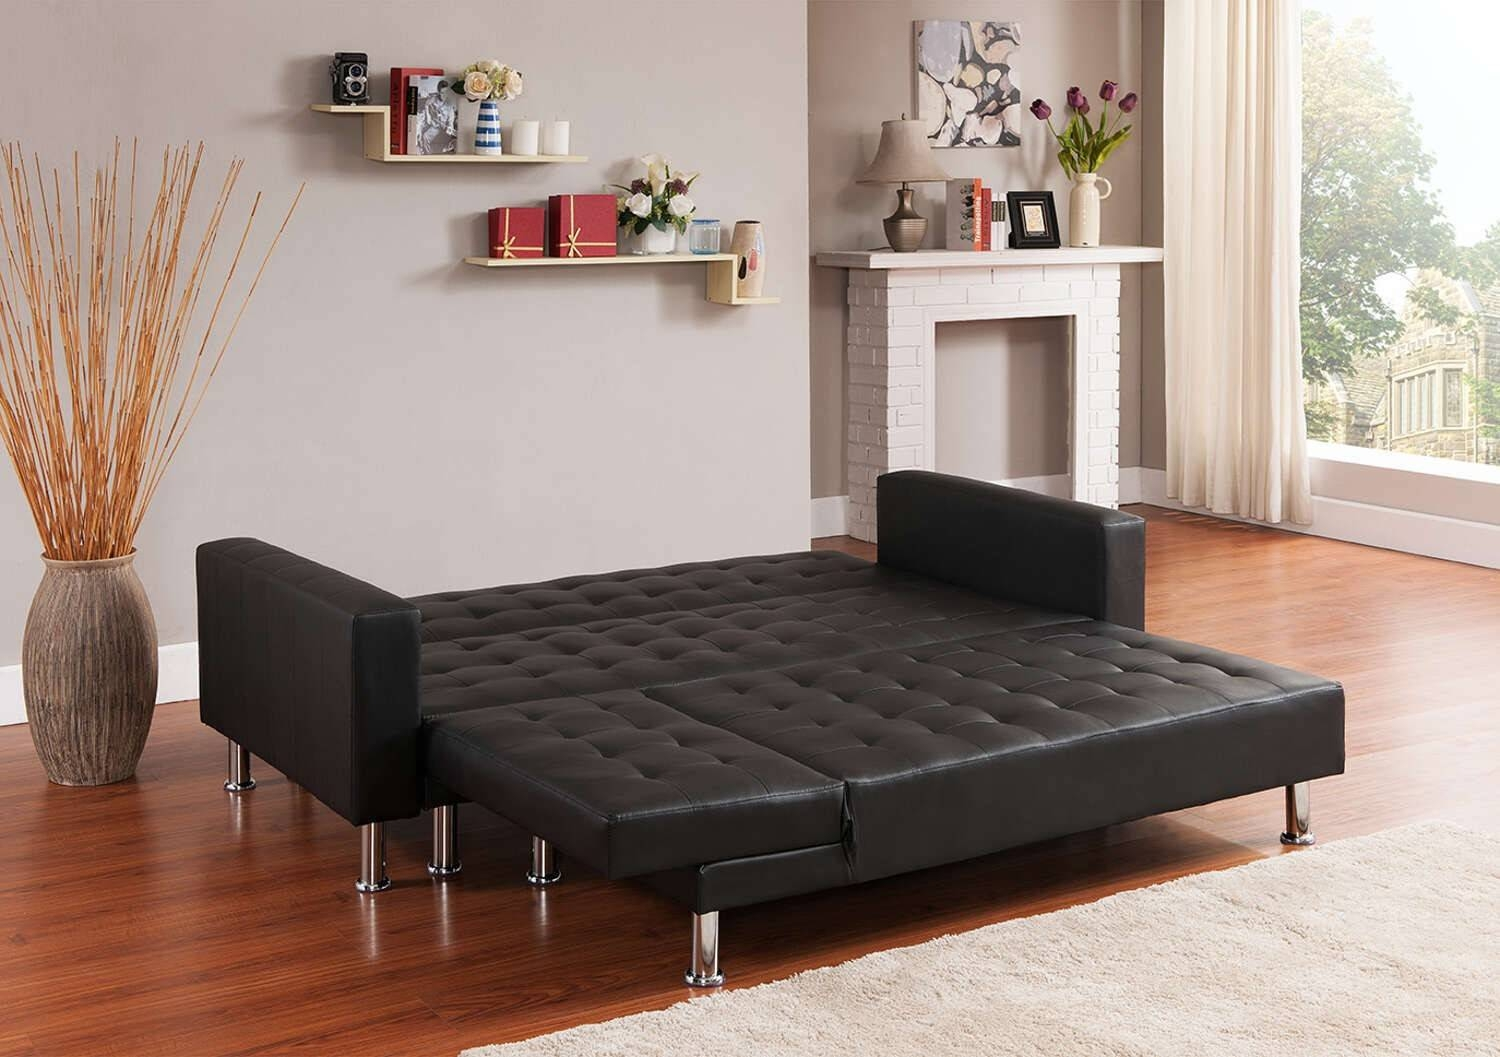 Black Orlando 3/4 Seats Leather Corner Sofa Bed | Furniturebox inside Leather Corner Sofa Bed (Image 3 of 30)